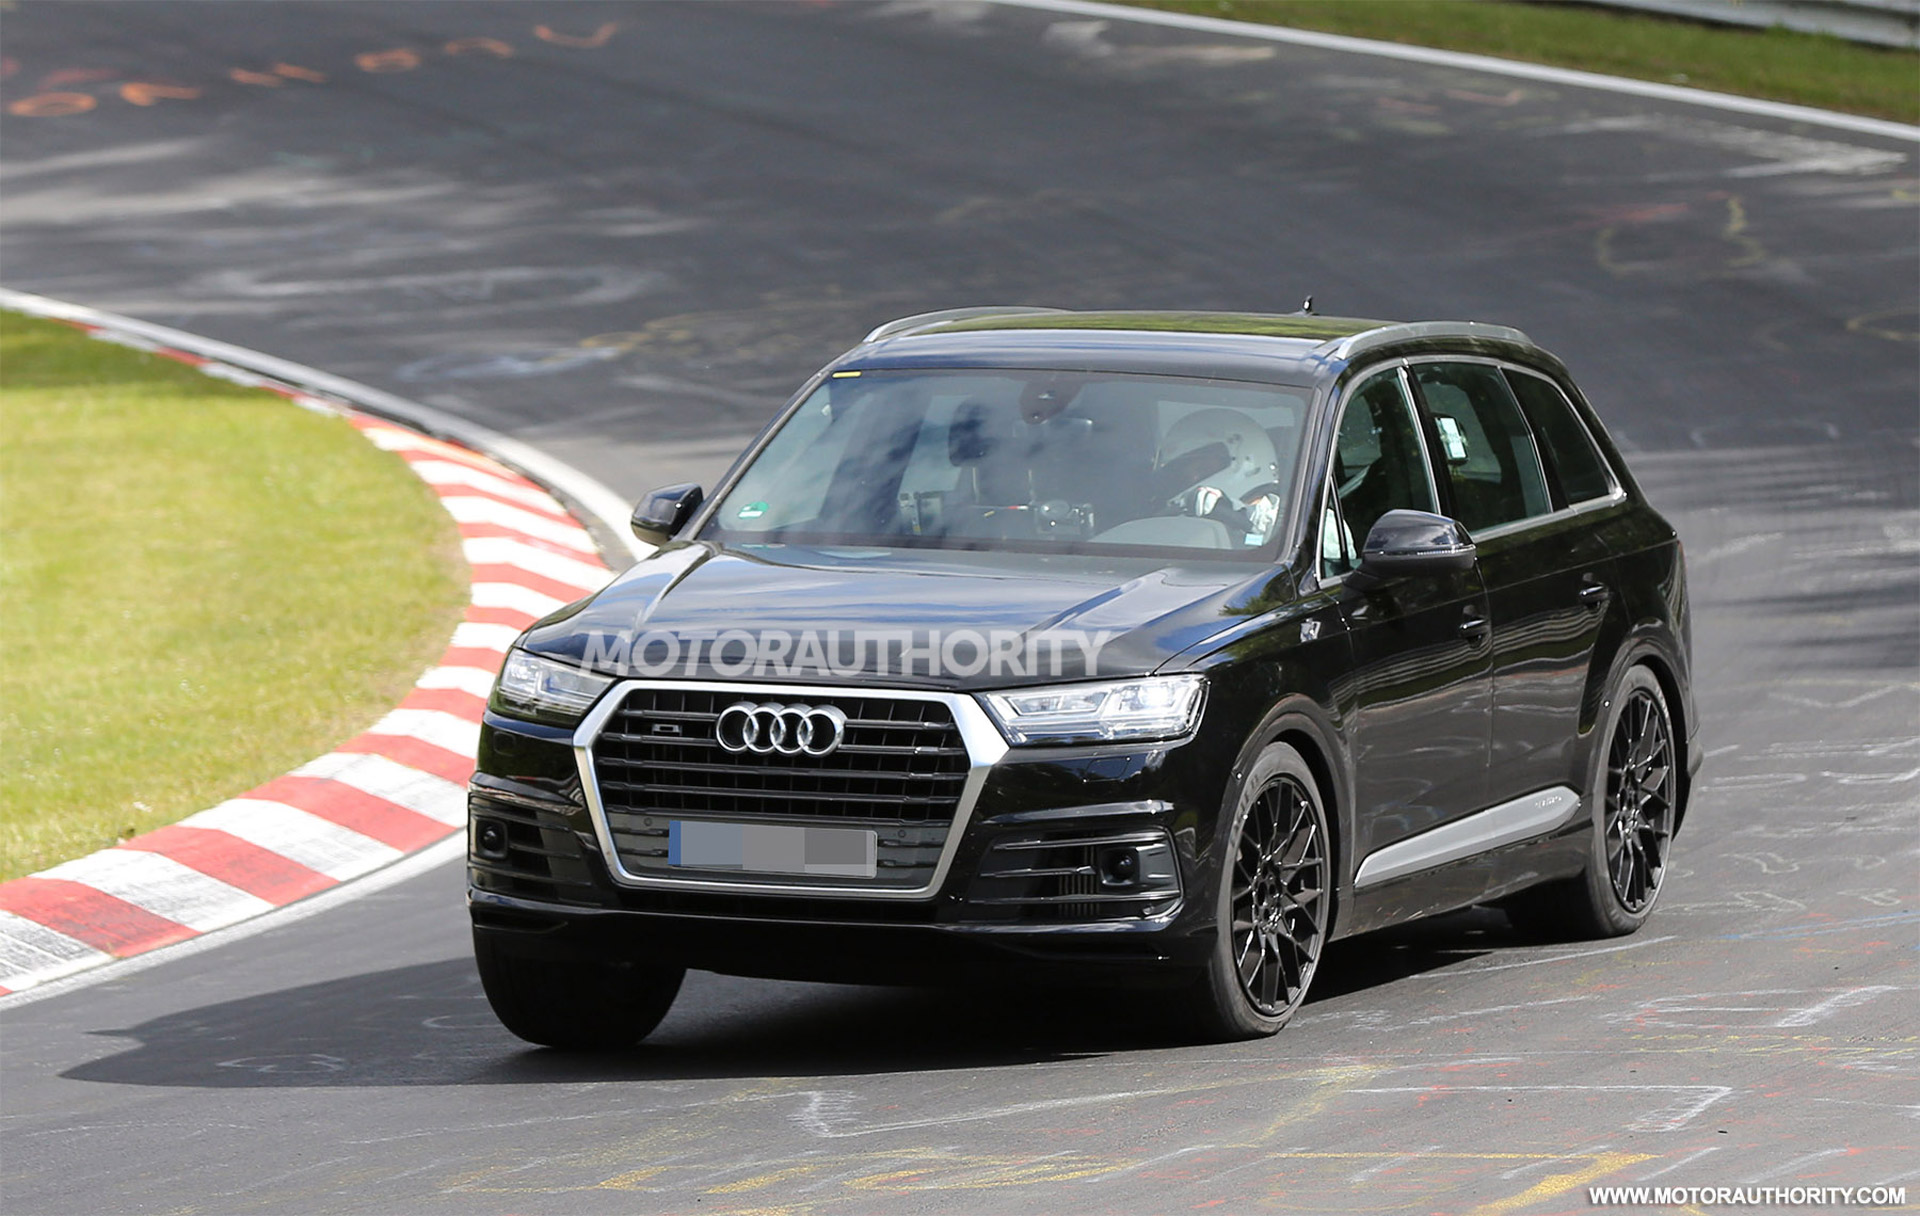 2017 Audi SQ7 Spy Shots